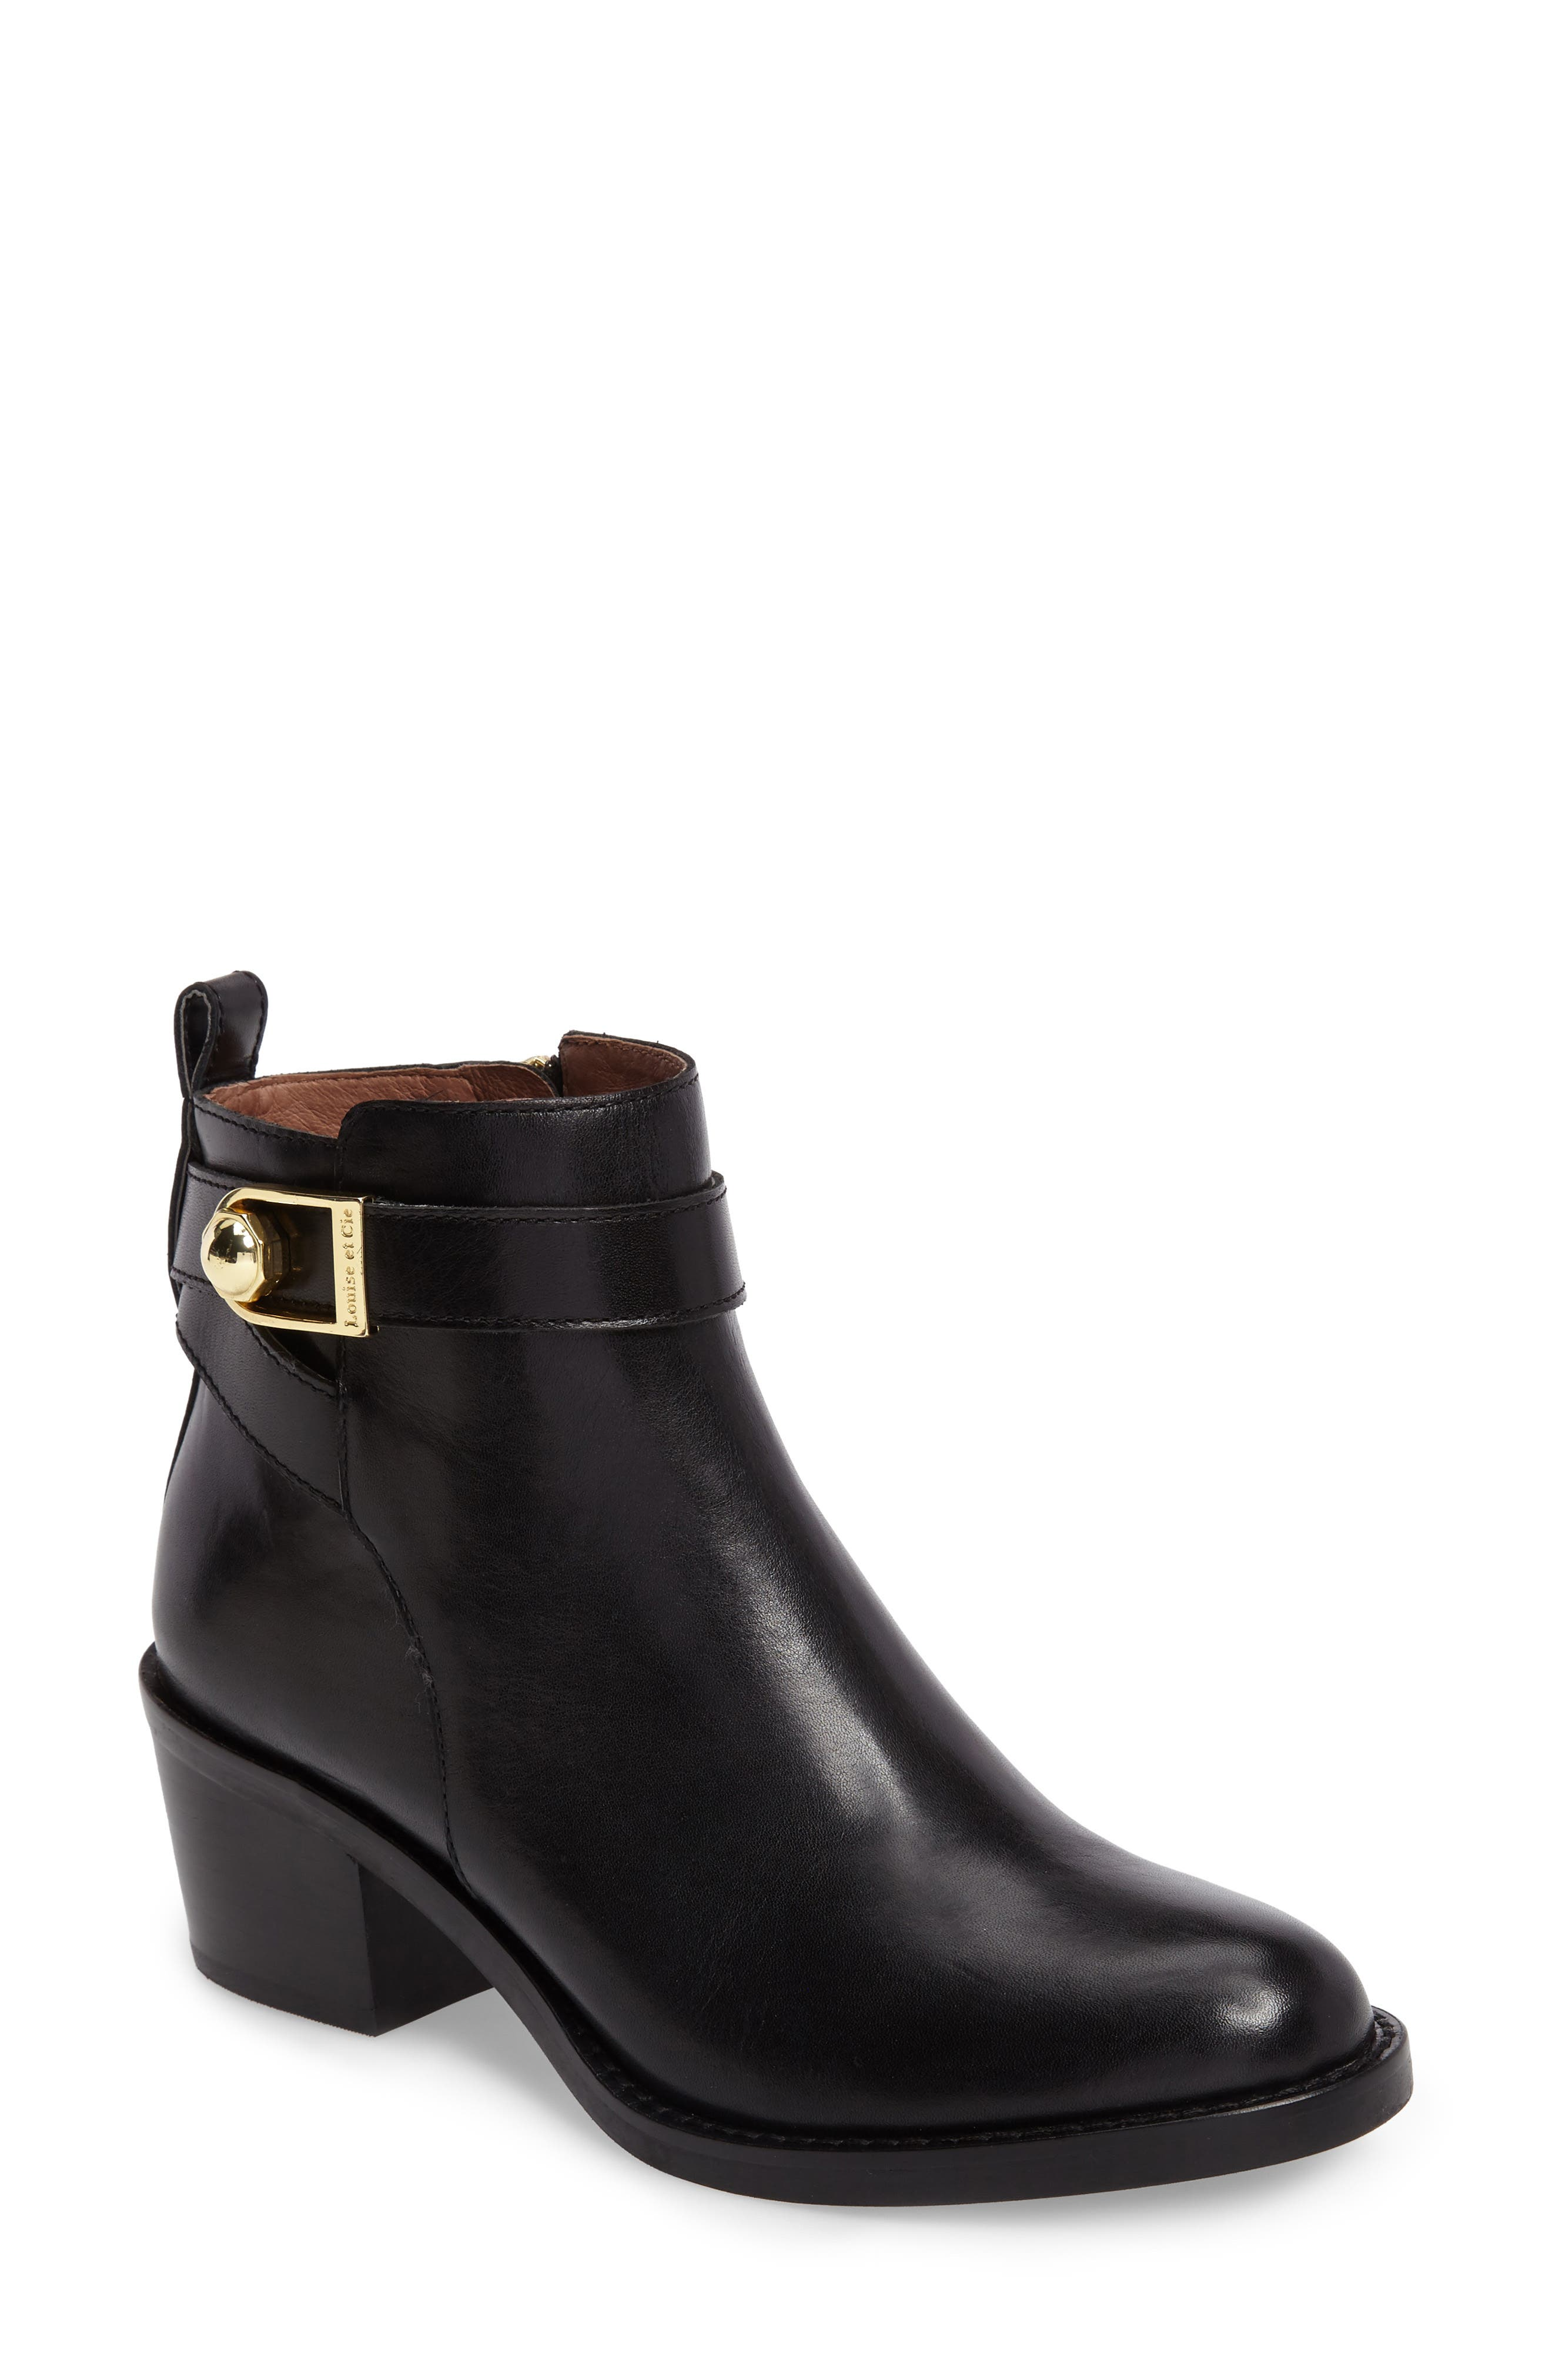 Louise et Cie Vincenzo Bootie (Women)